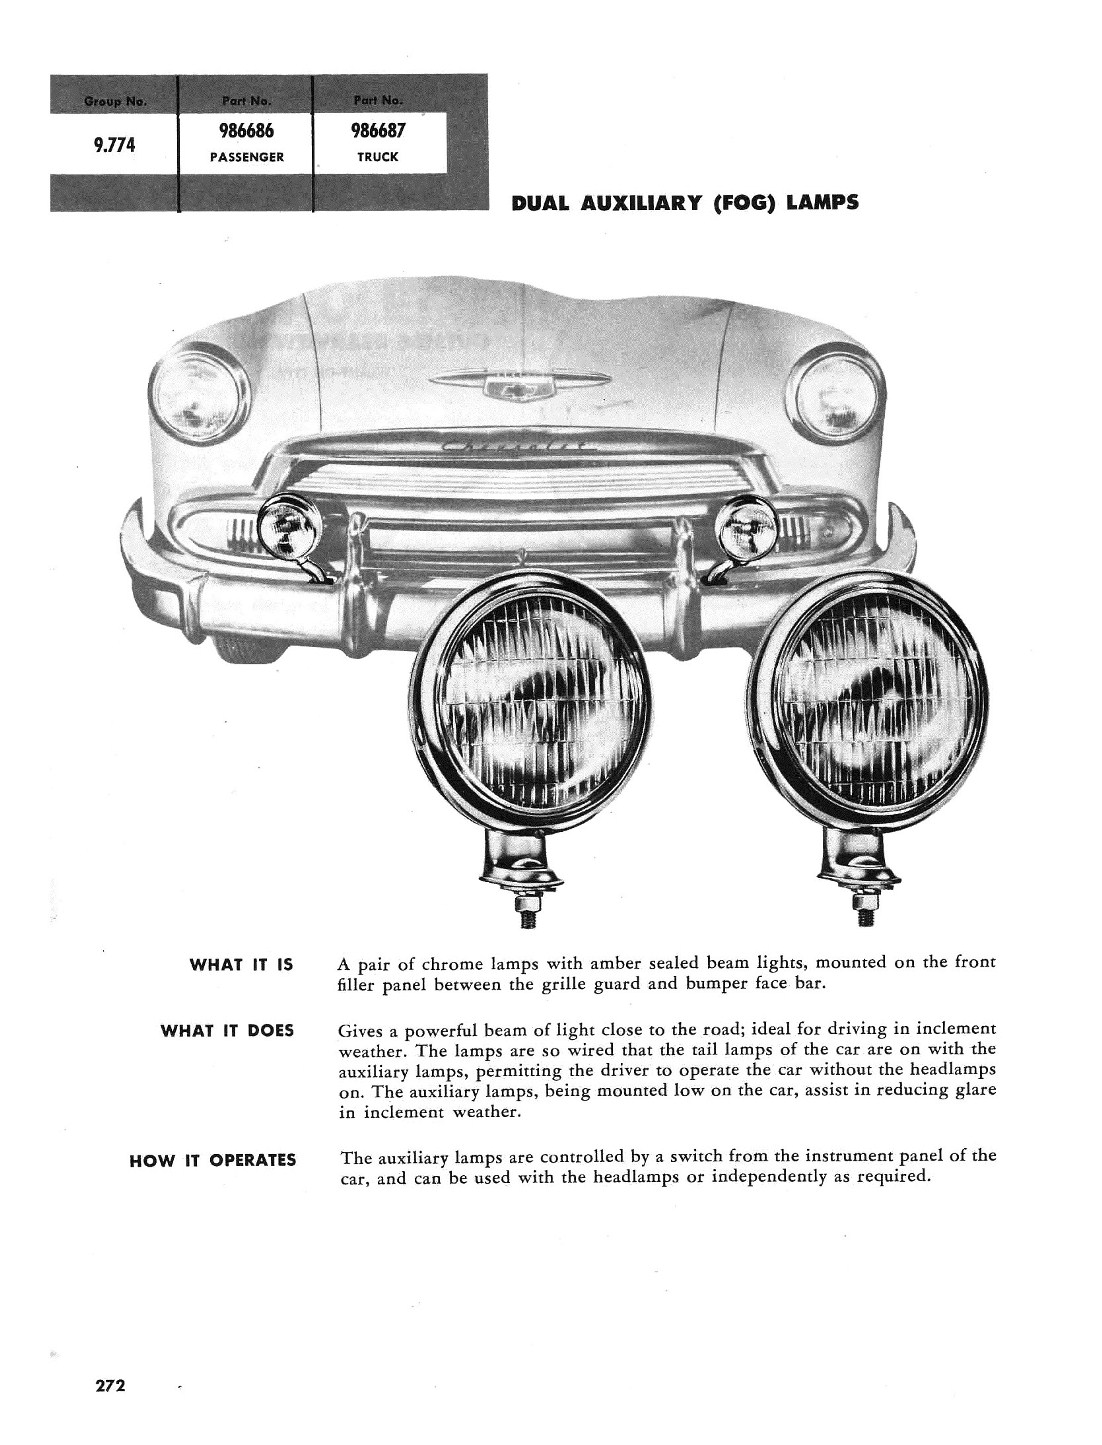 Printing A Post Round Amber Fog Lights Chevy Message Forum 1951 Chevrolet 4 Door Sedan 51 Styleline Special Business Coupe Shadow Gray 53 6500 Dump Bed Oxidized Red 50 Deluxe Mist Green